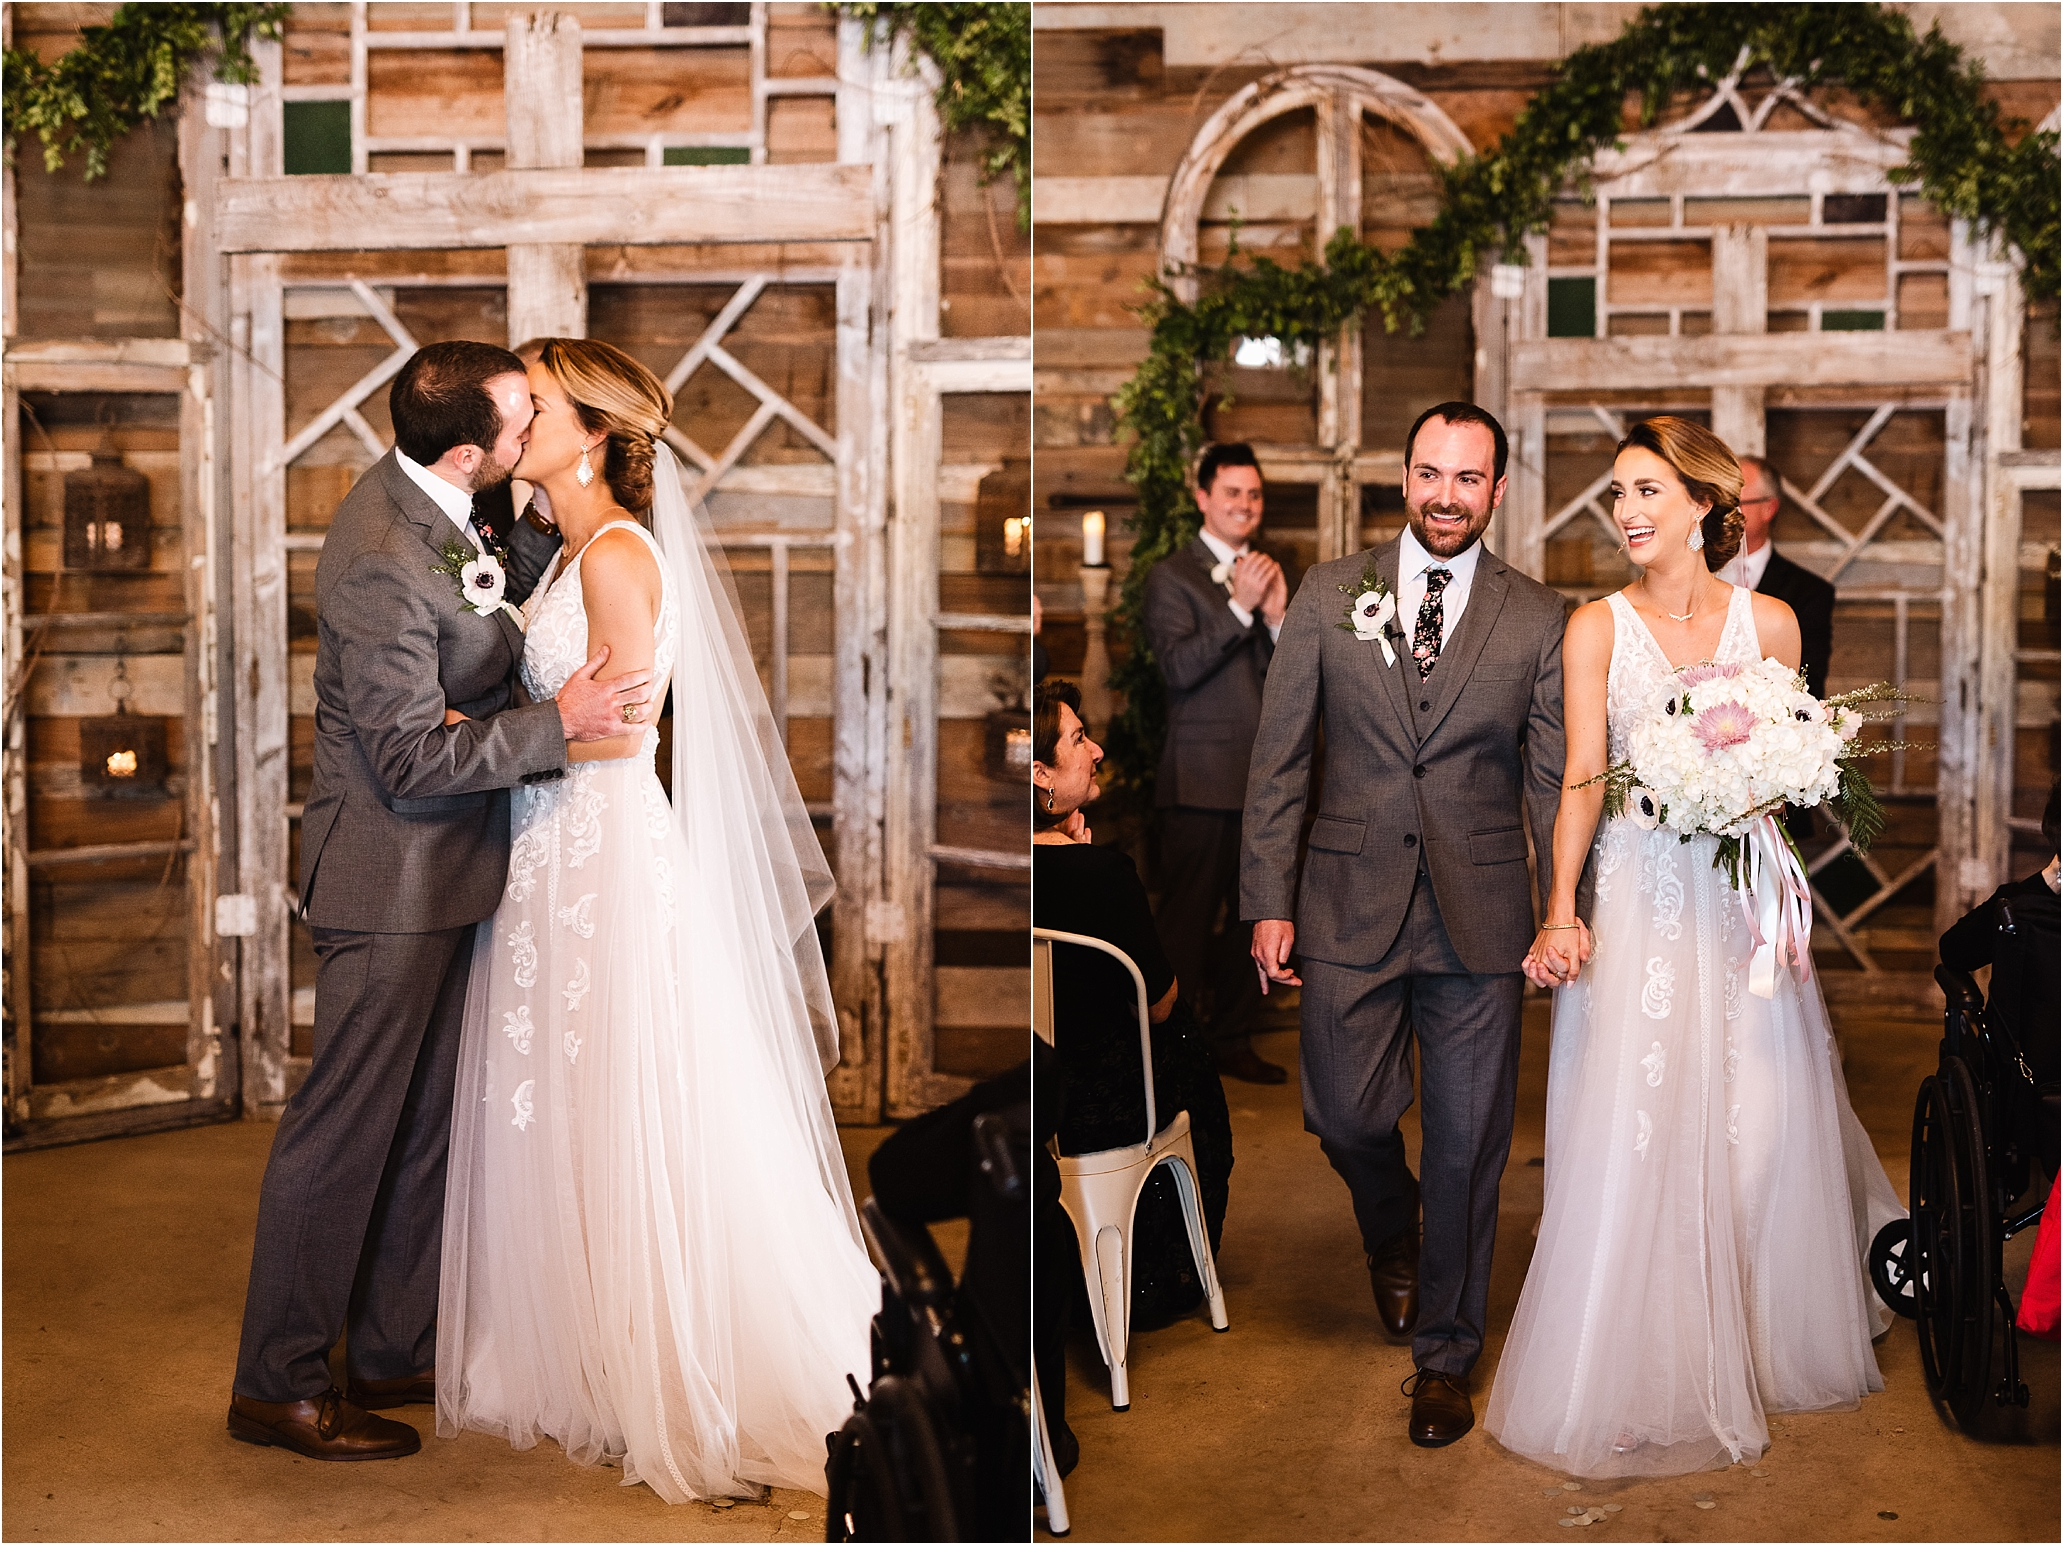 PattisonHouse_TexasWeddingPhotographer_CarlyCrockett&MattBrownWedding_0109.jpg